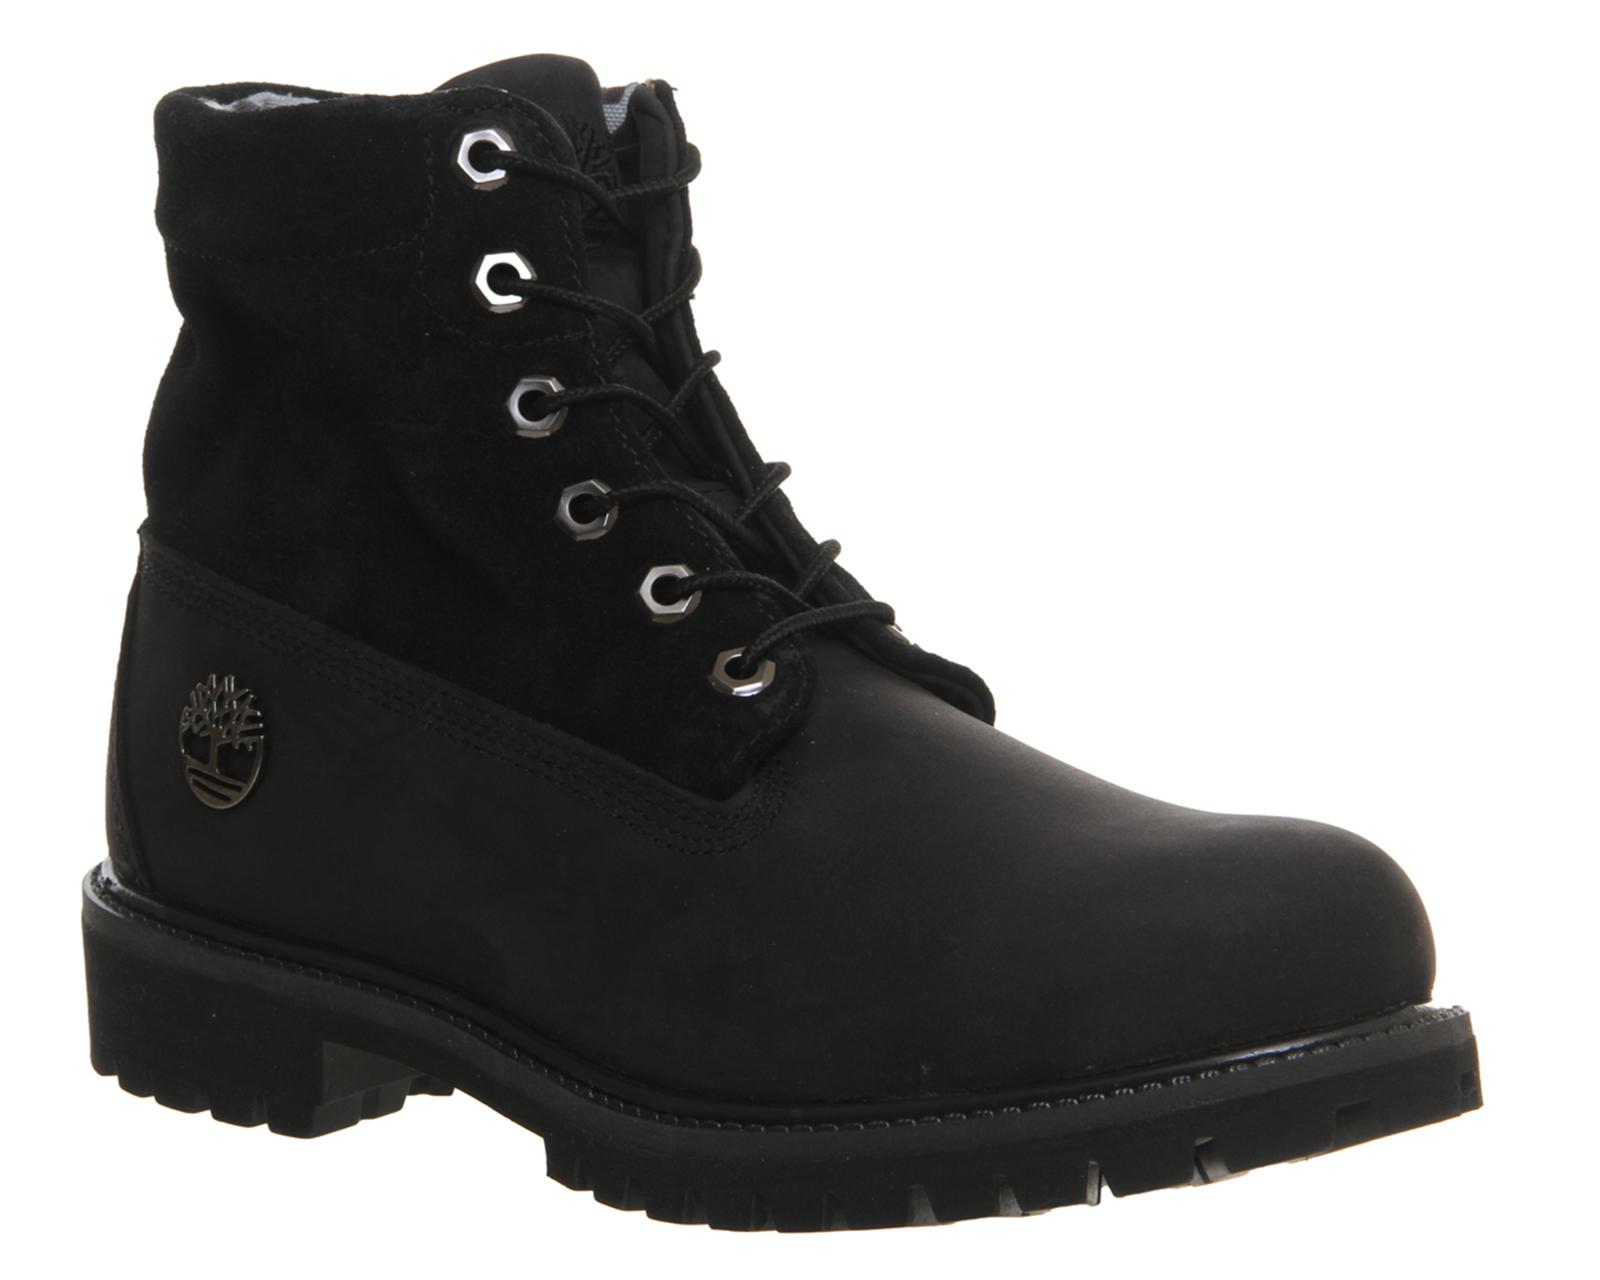 d06cf3ad052 Timberland Roll Top Boots in Black for Men - Lyst